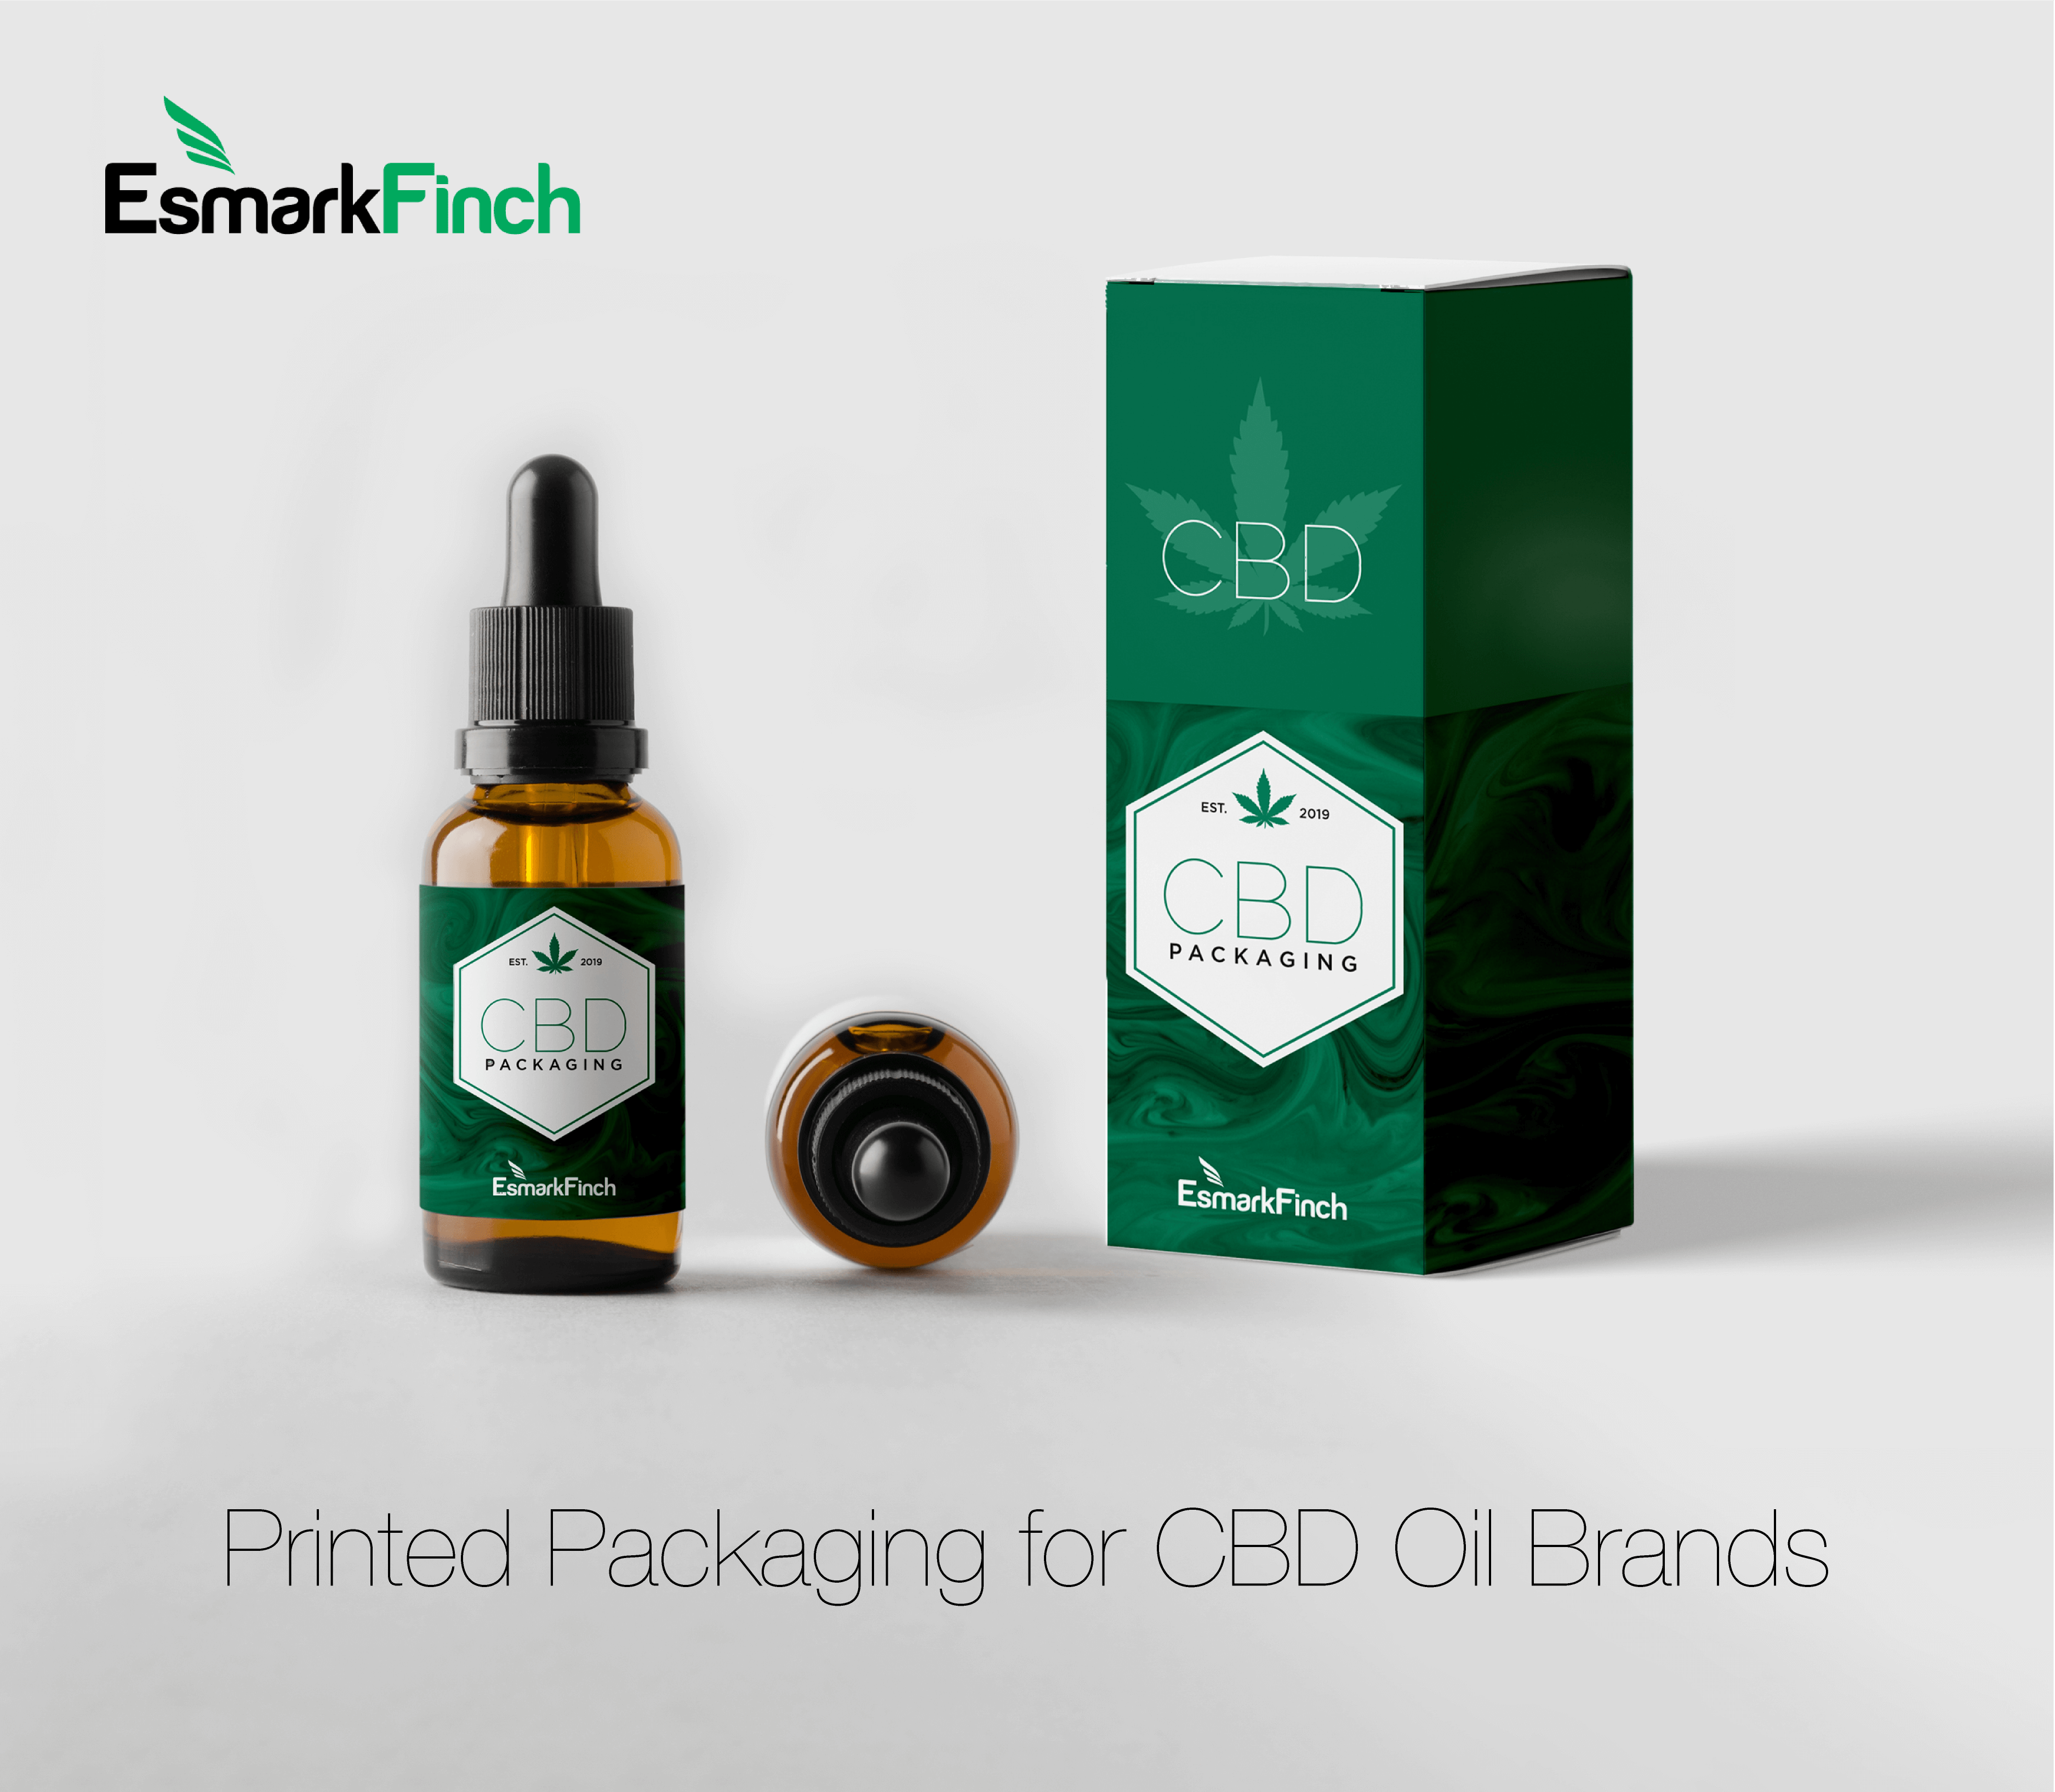 Esmark Finch specialise in printed packaging for CBD Brands